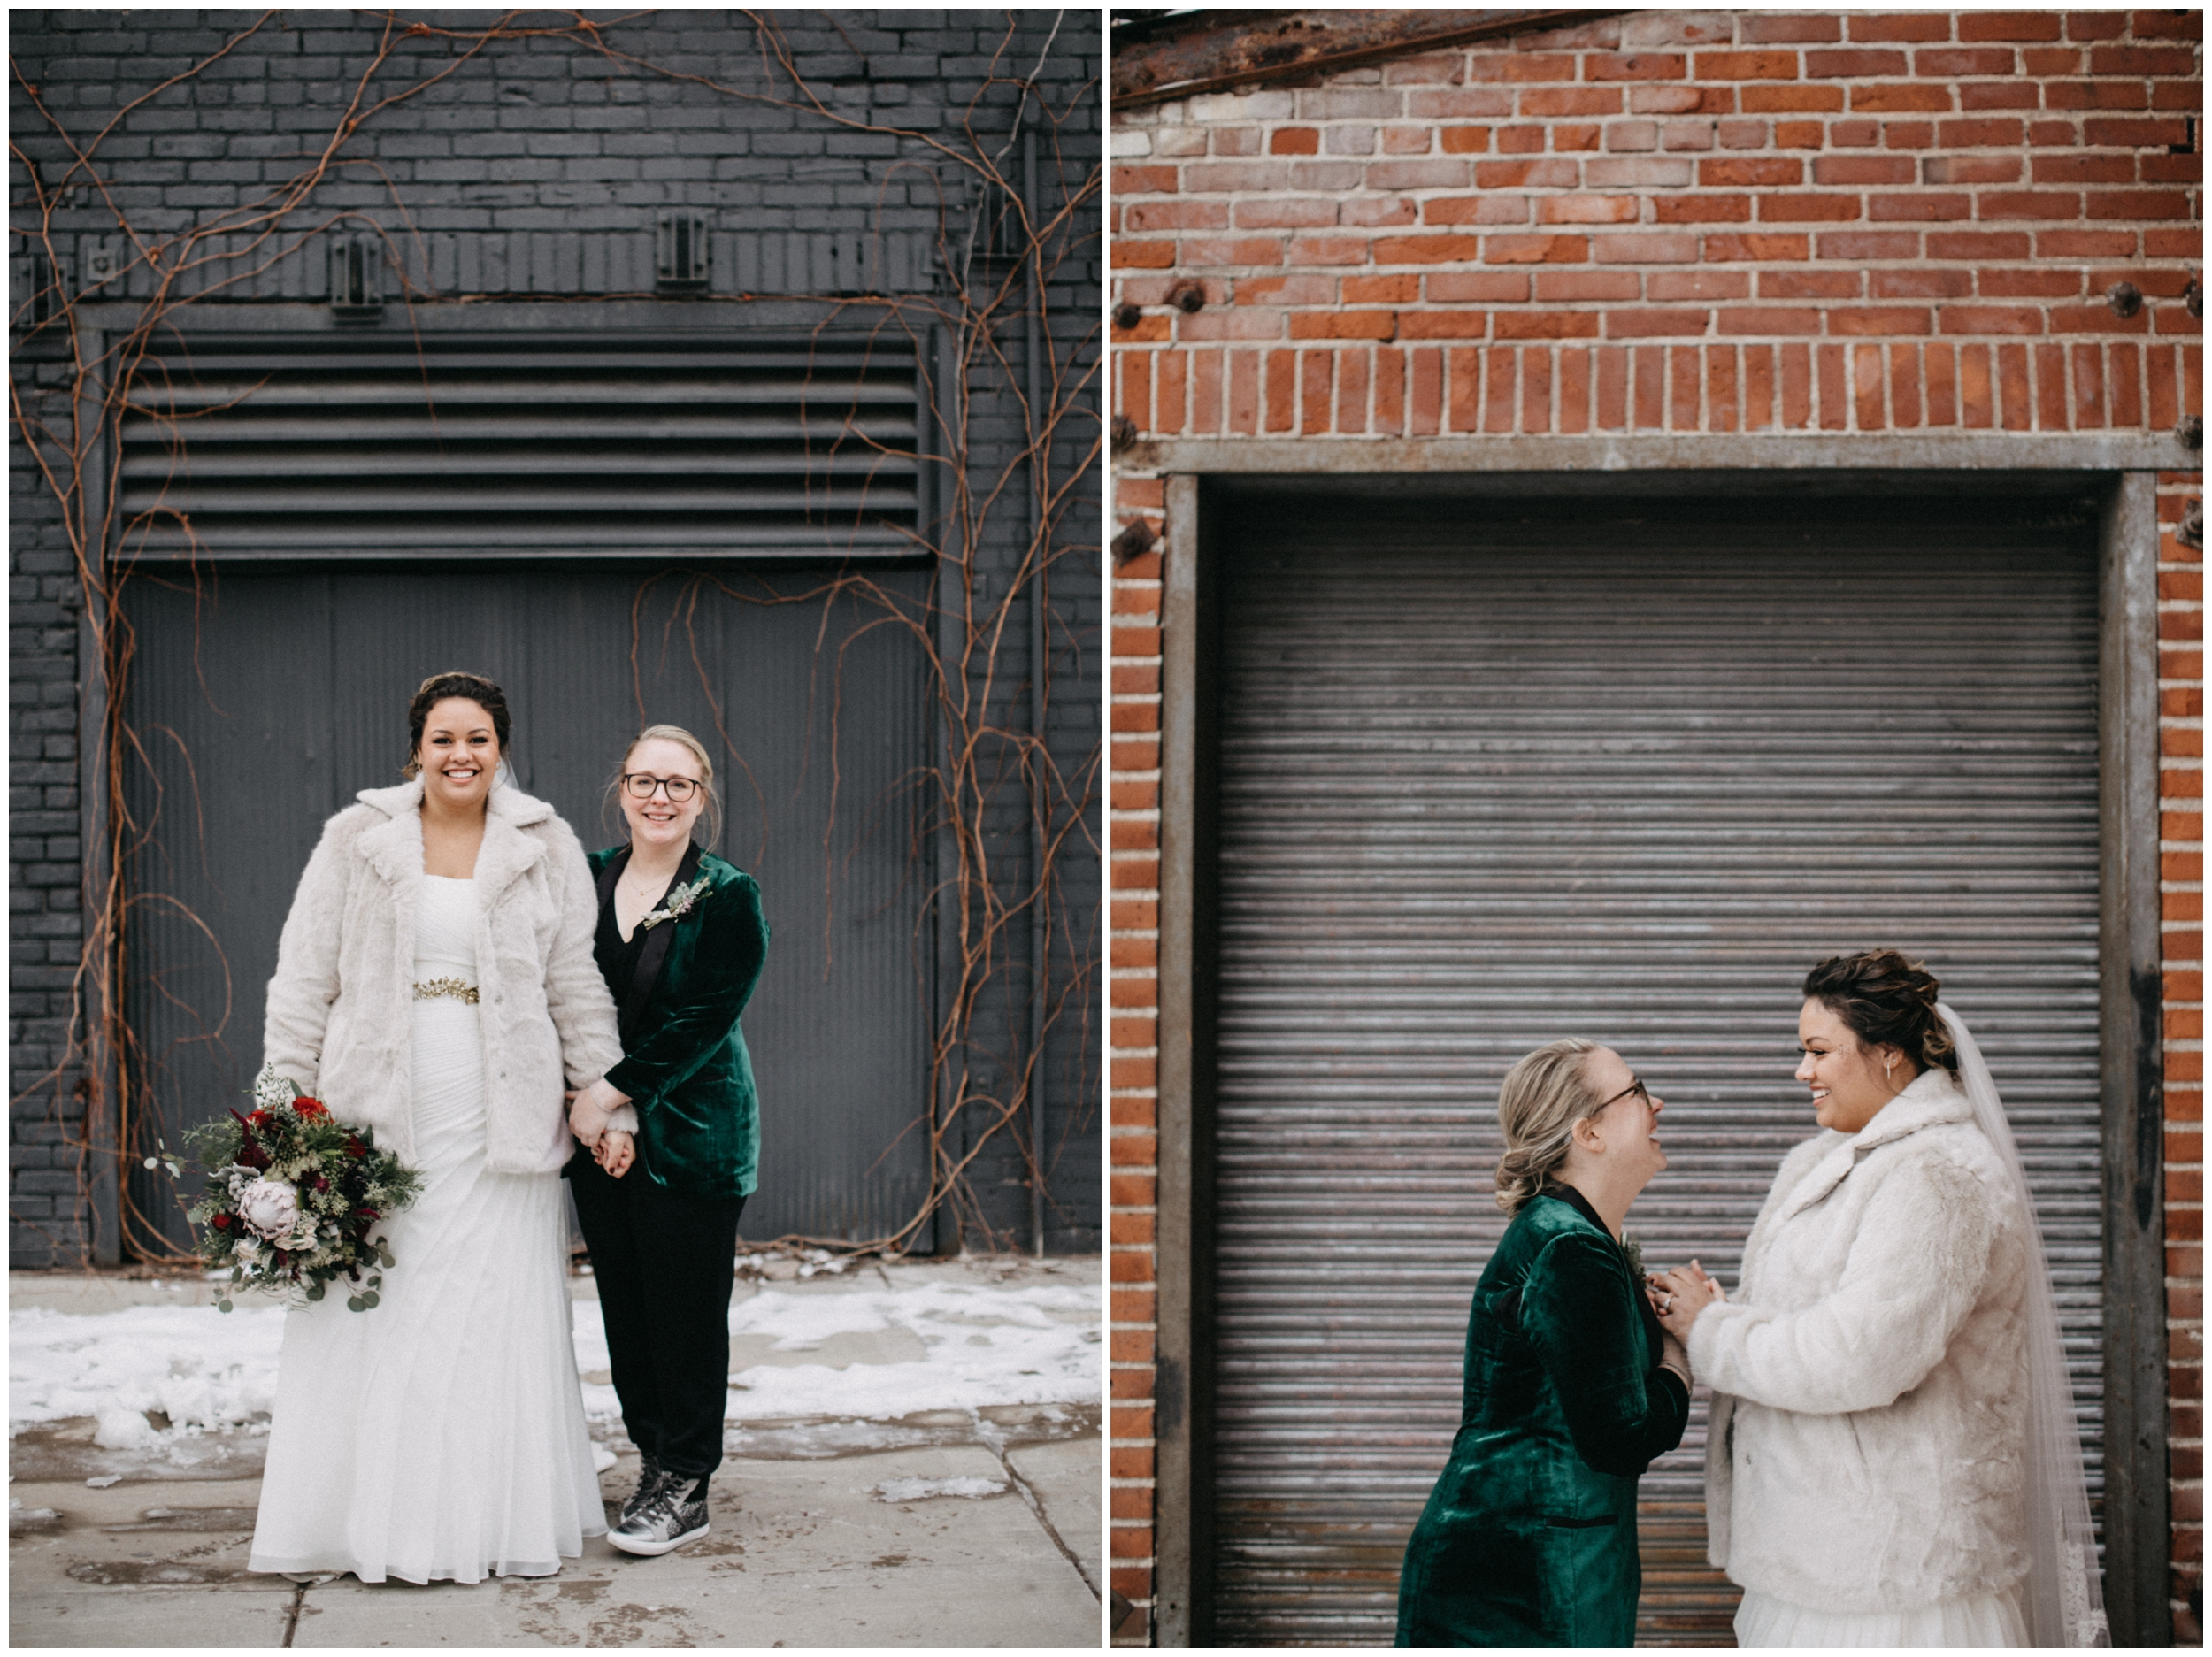 Industrial inspired wedding at Paikka in St paul